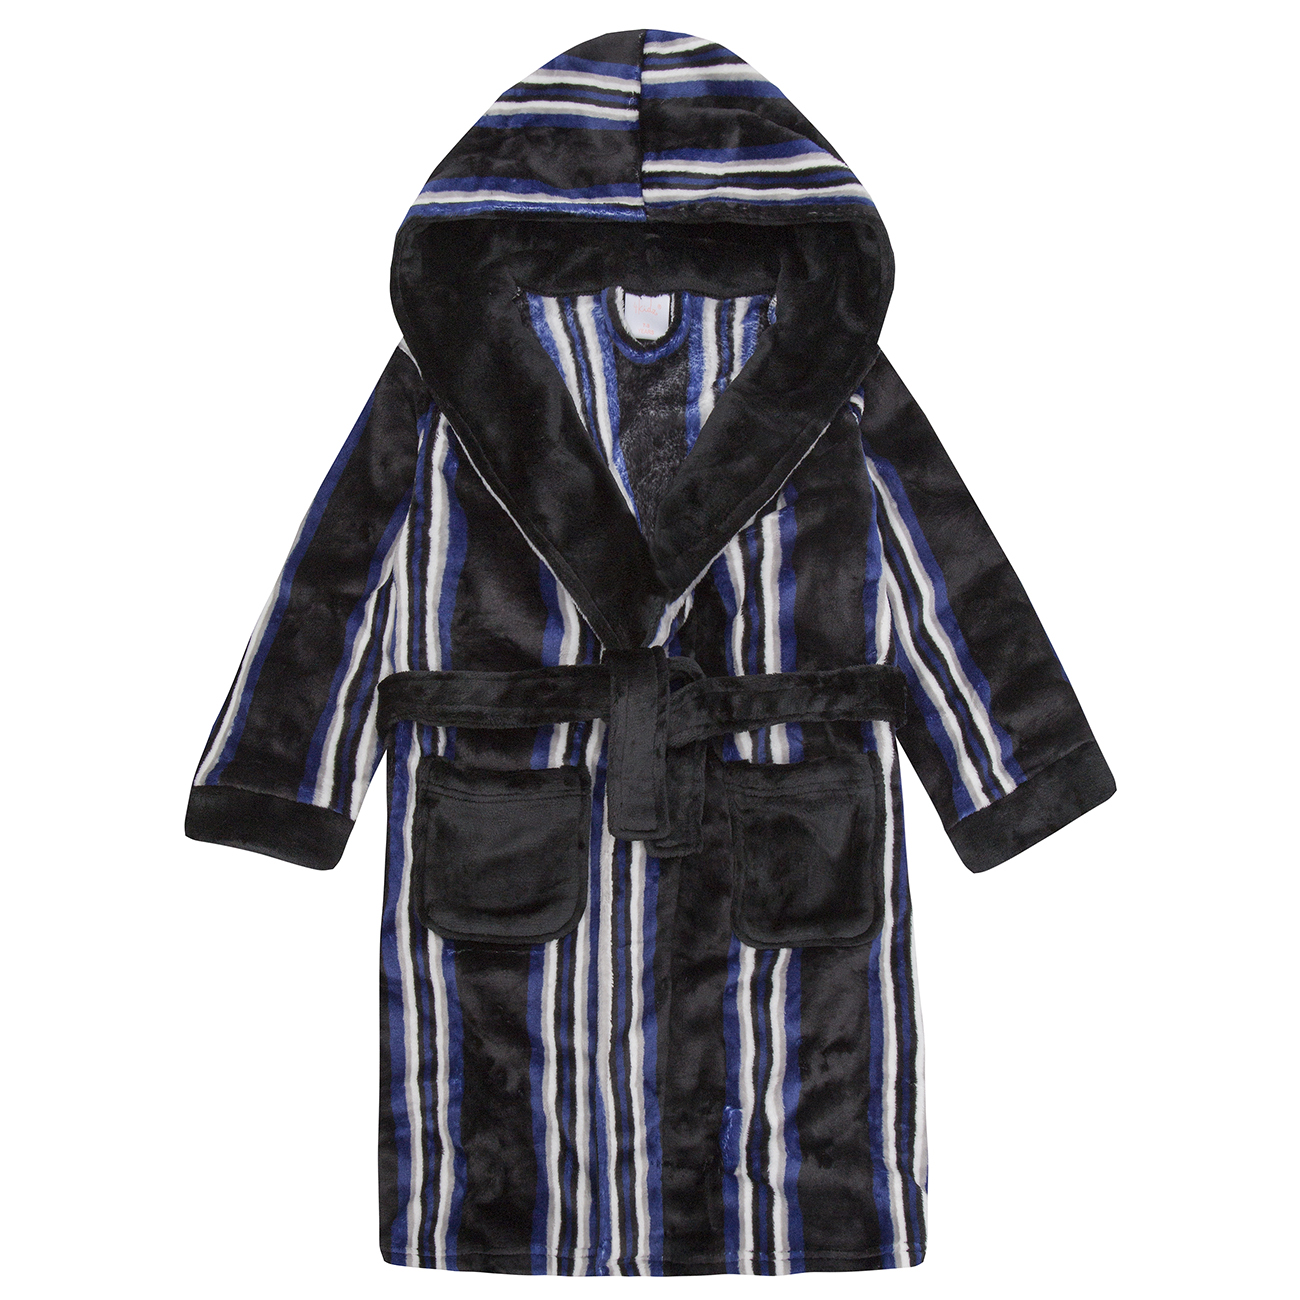 Flannel Fleece Hooded Night Robe 4Kidz Childrens Boys Striped Dressing Gown